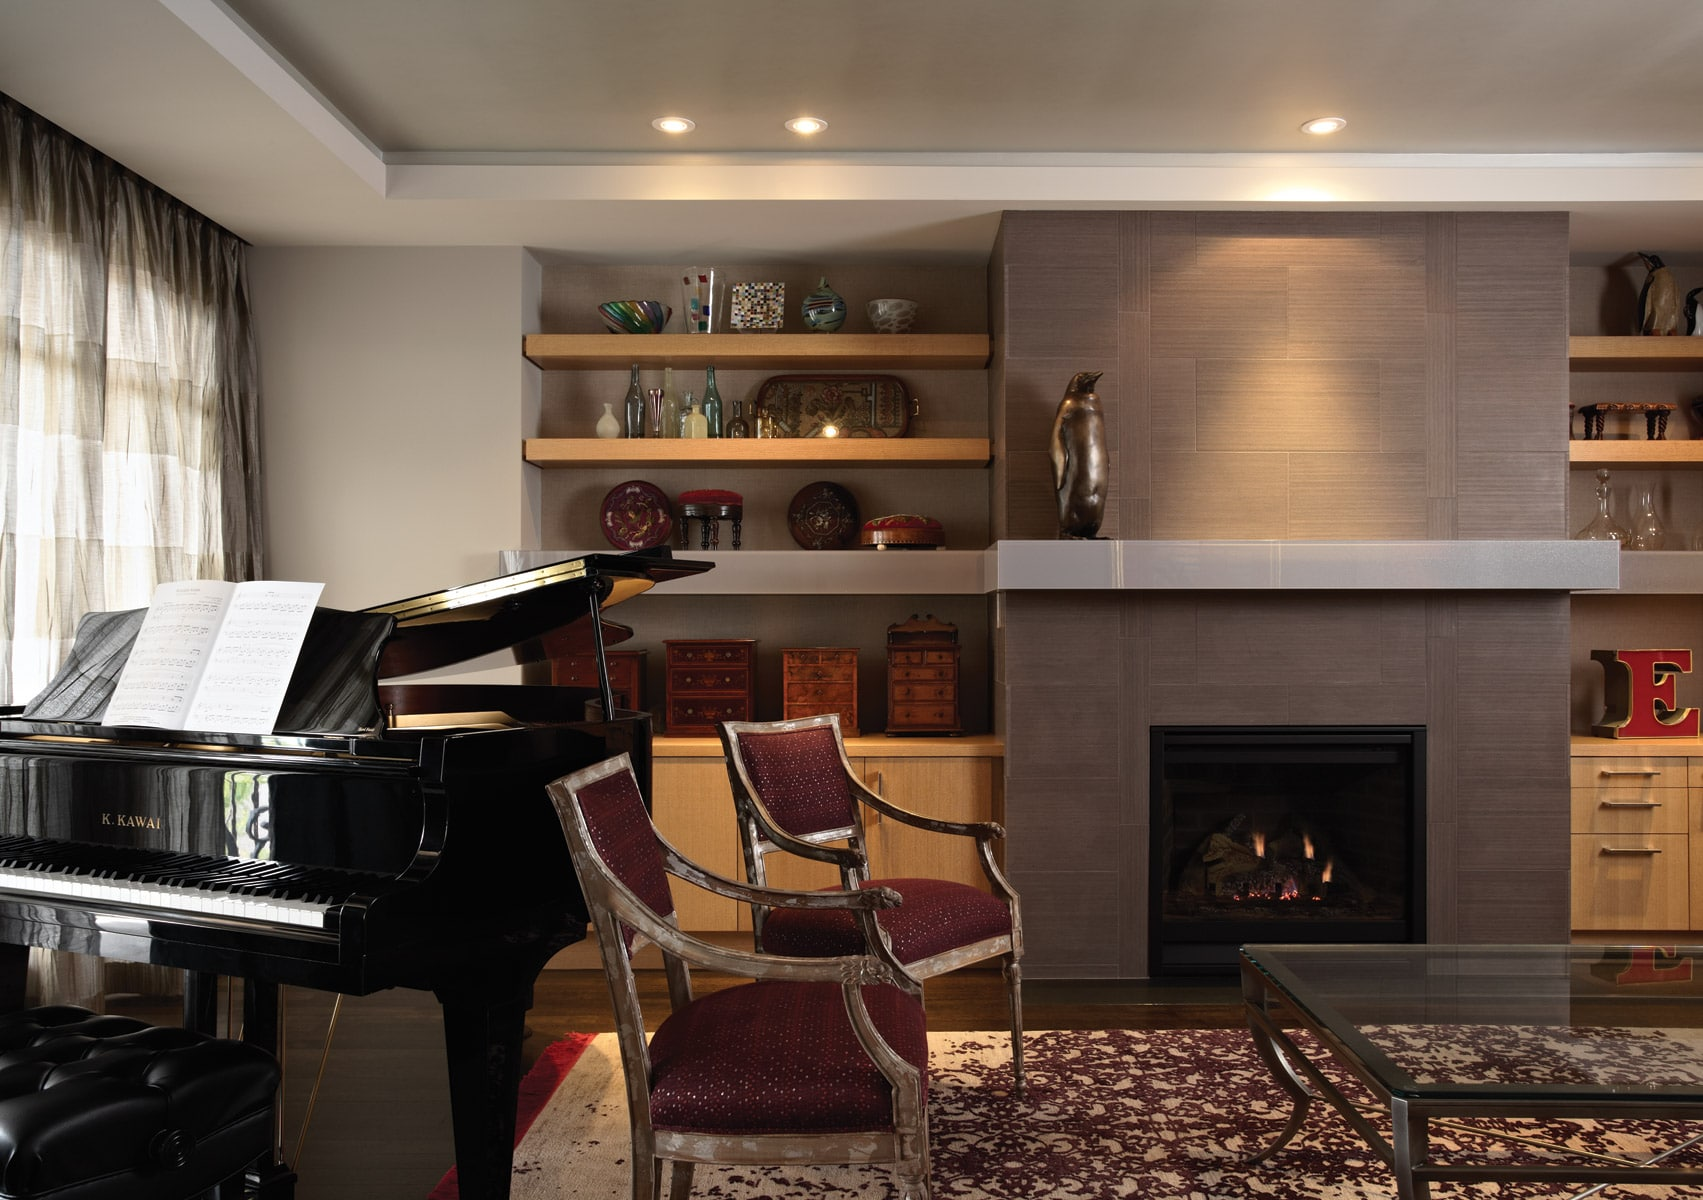 Exceptional-Condominium-Living-Room-Fireplace-Minneapolis-interior-designer.jpeg